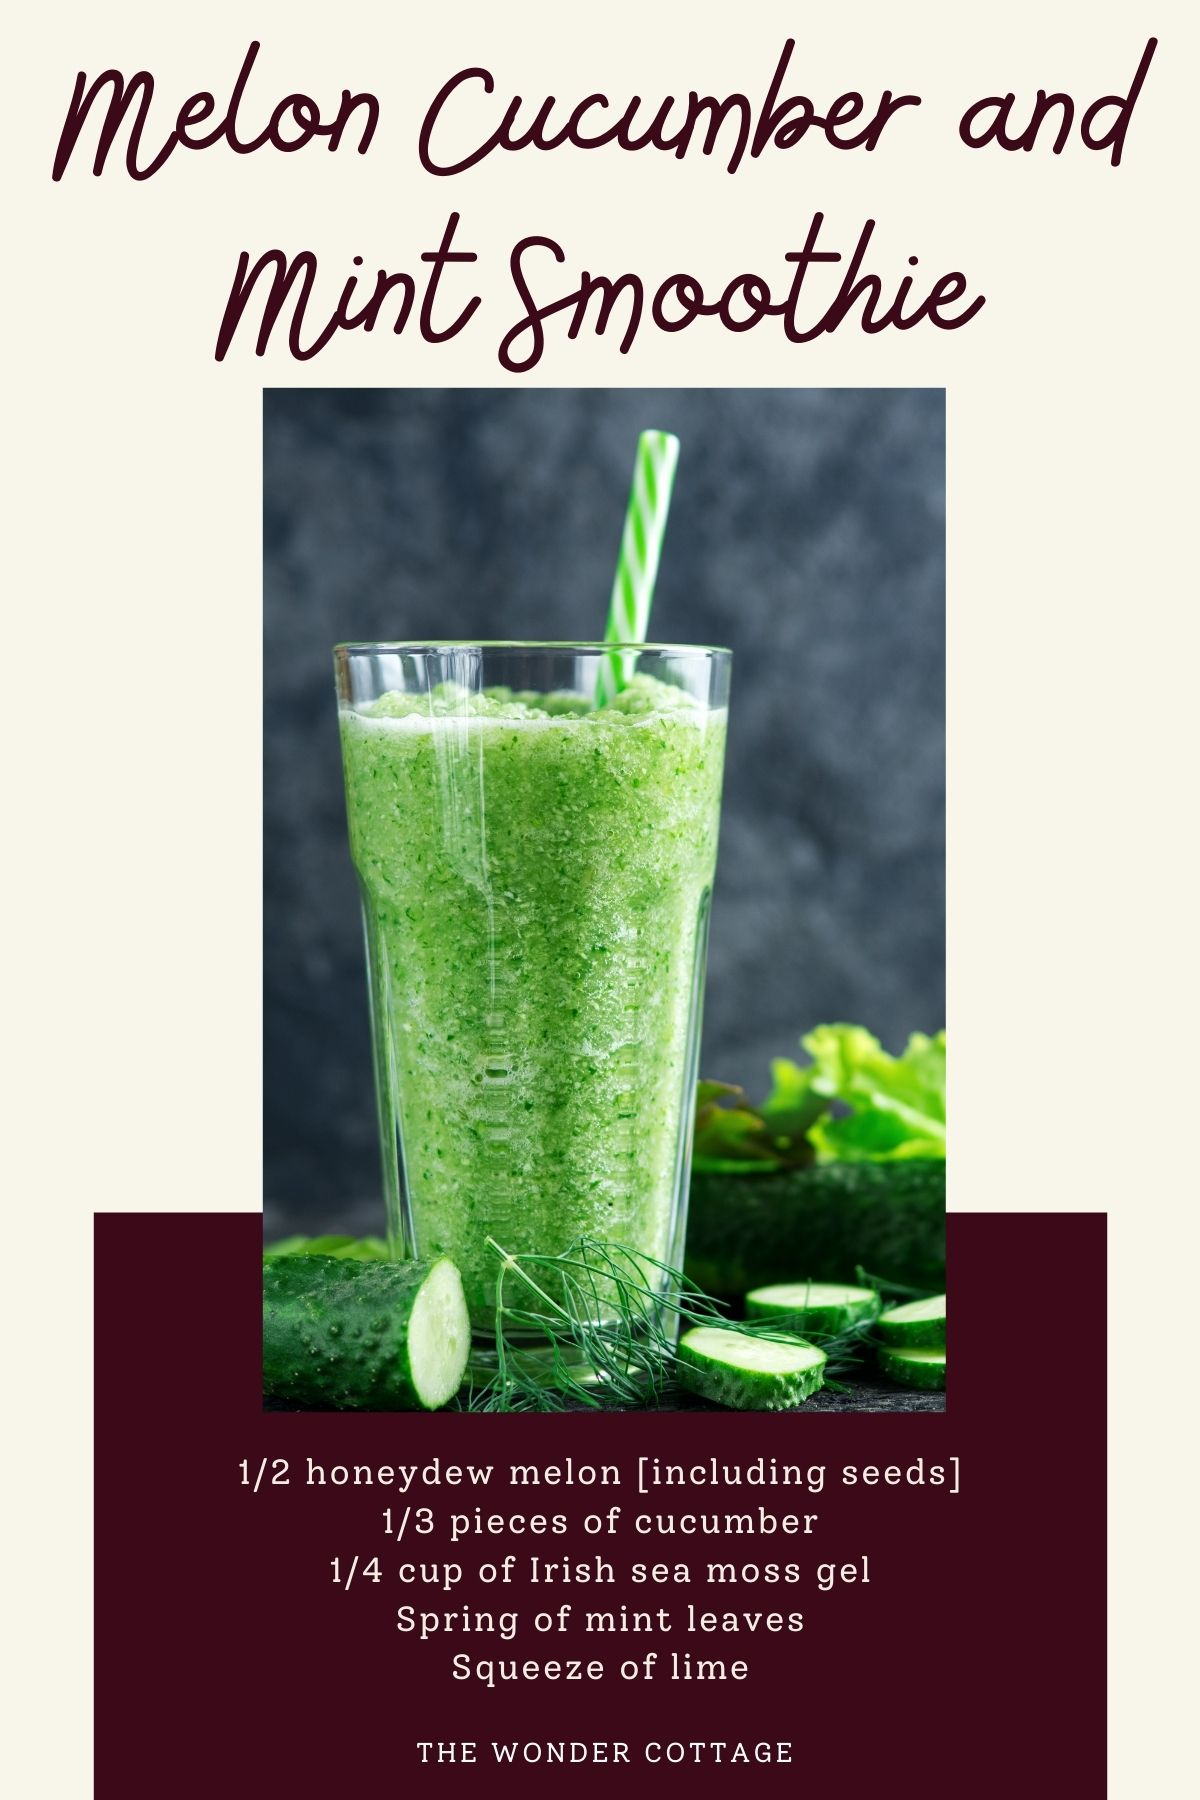 Melon cucumber and mint smoothie